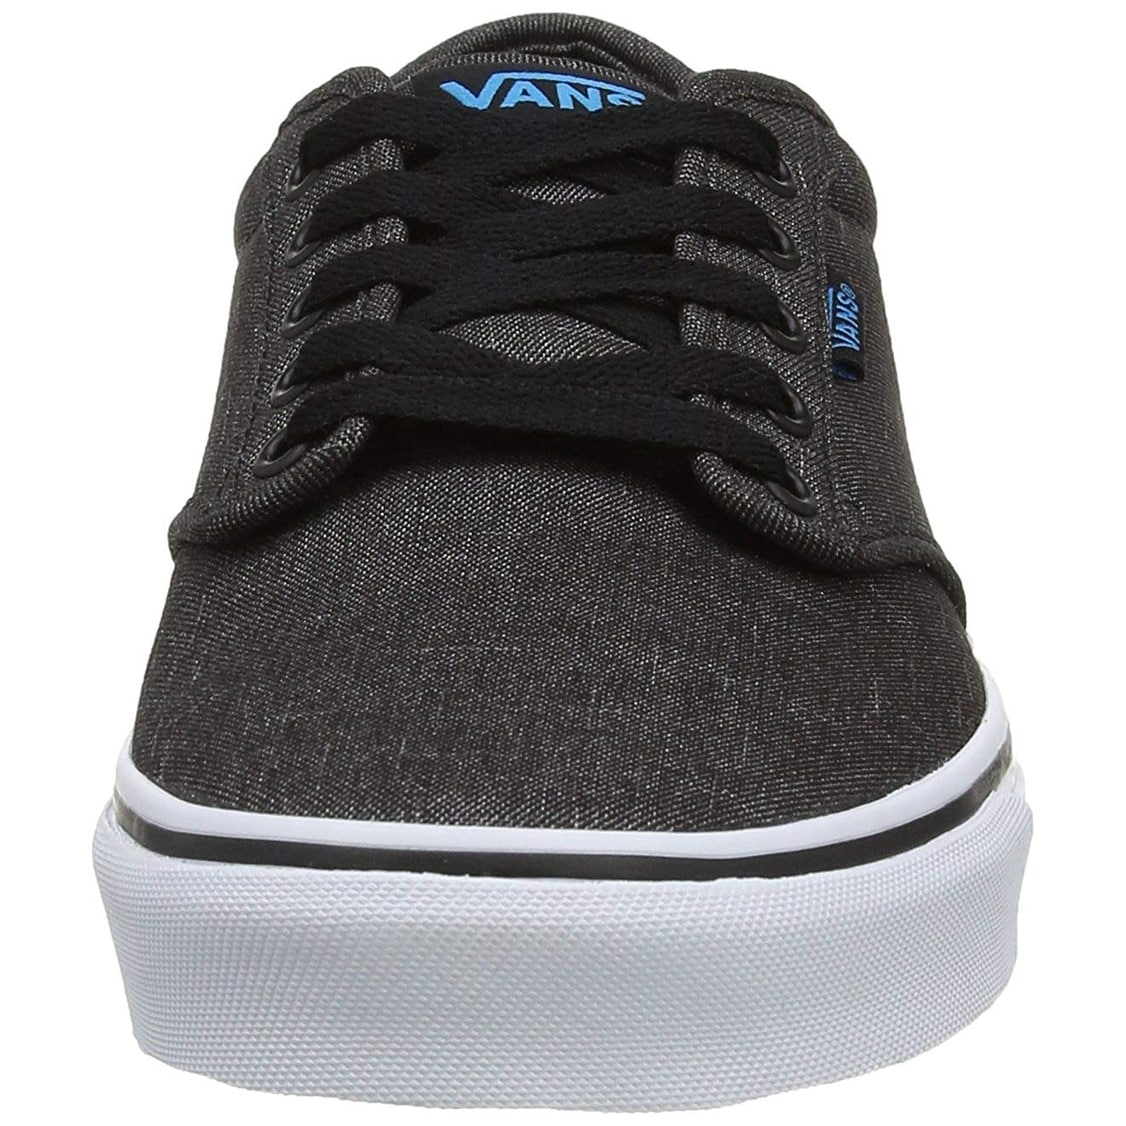 fdcf3ce9f4 Shop Vans Mens Atwood (Textile) Black Hawaiin Ocean Skate Shoe 9.5 Men Us -  Free Shipping Today - Overstock - 25367614